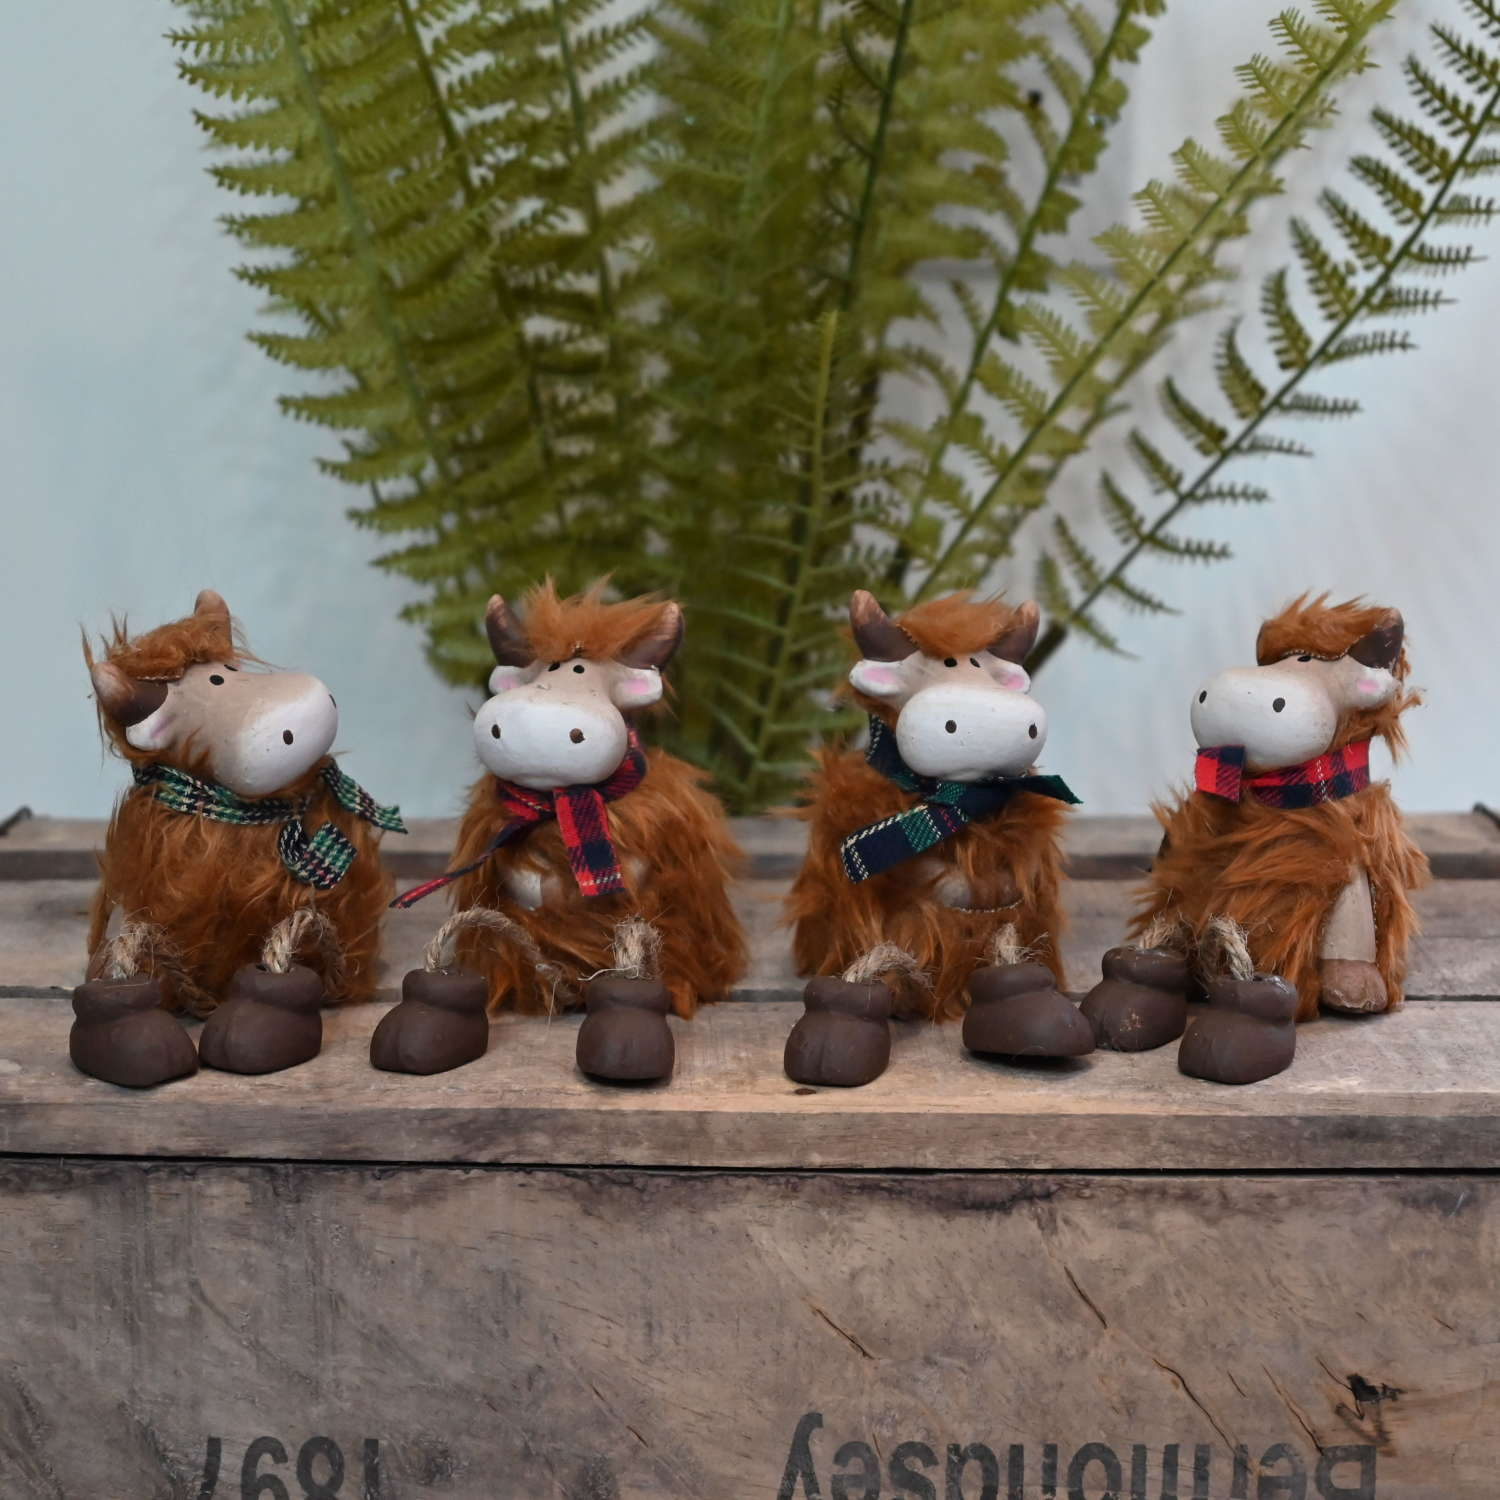 Highland Cow shelf hangers with dangly legs small